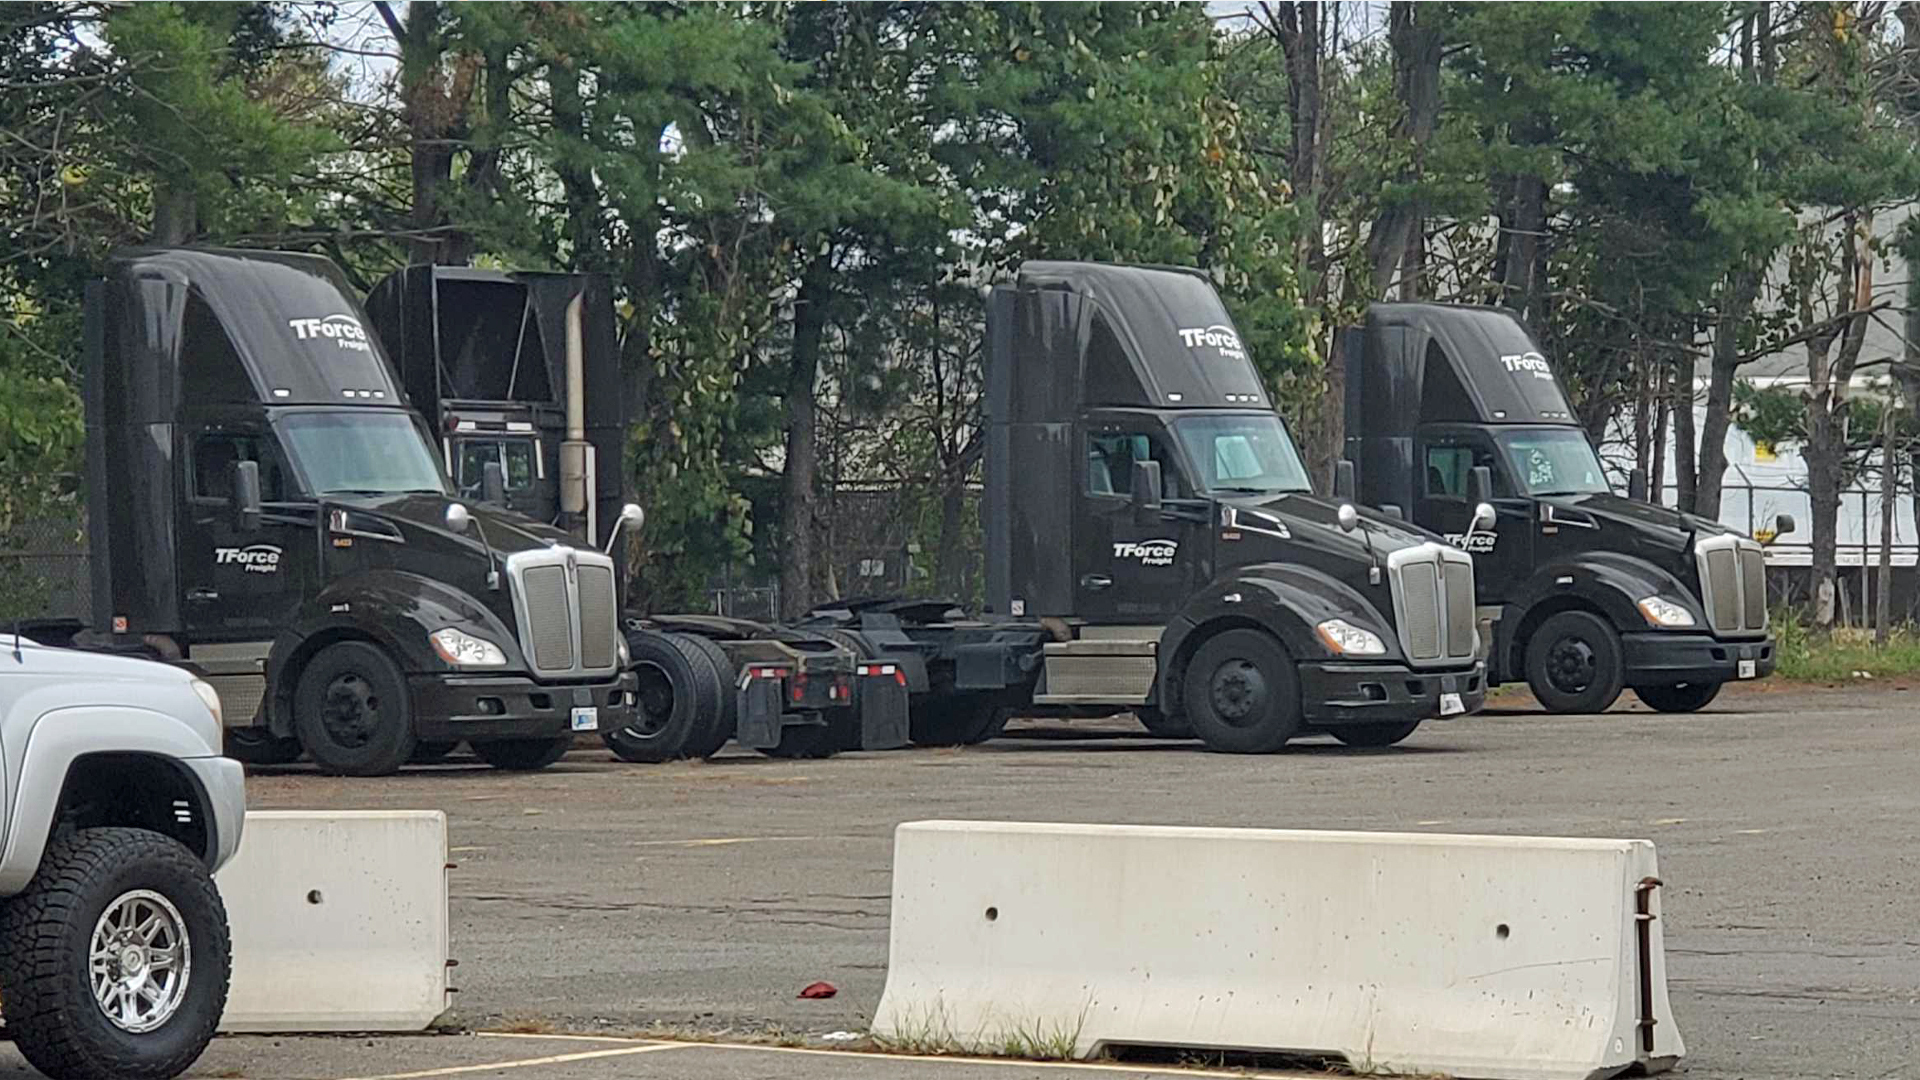 TForce Freight, owned by TFI International, trucks sit parked at a company facility. The Teamsters union has filed a complaint because TForce has limited the top speed of trucks.